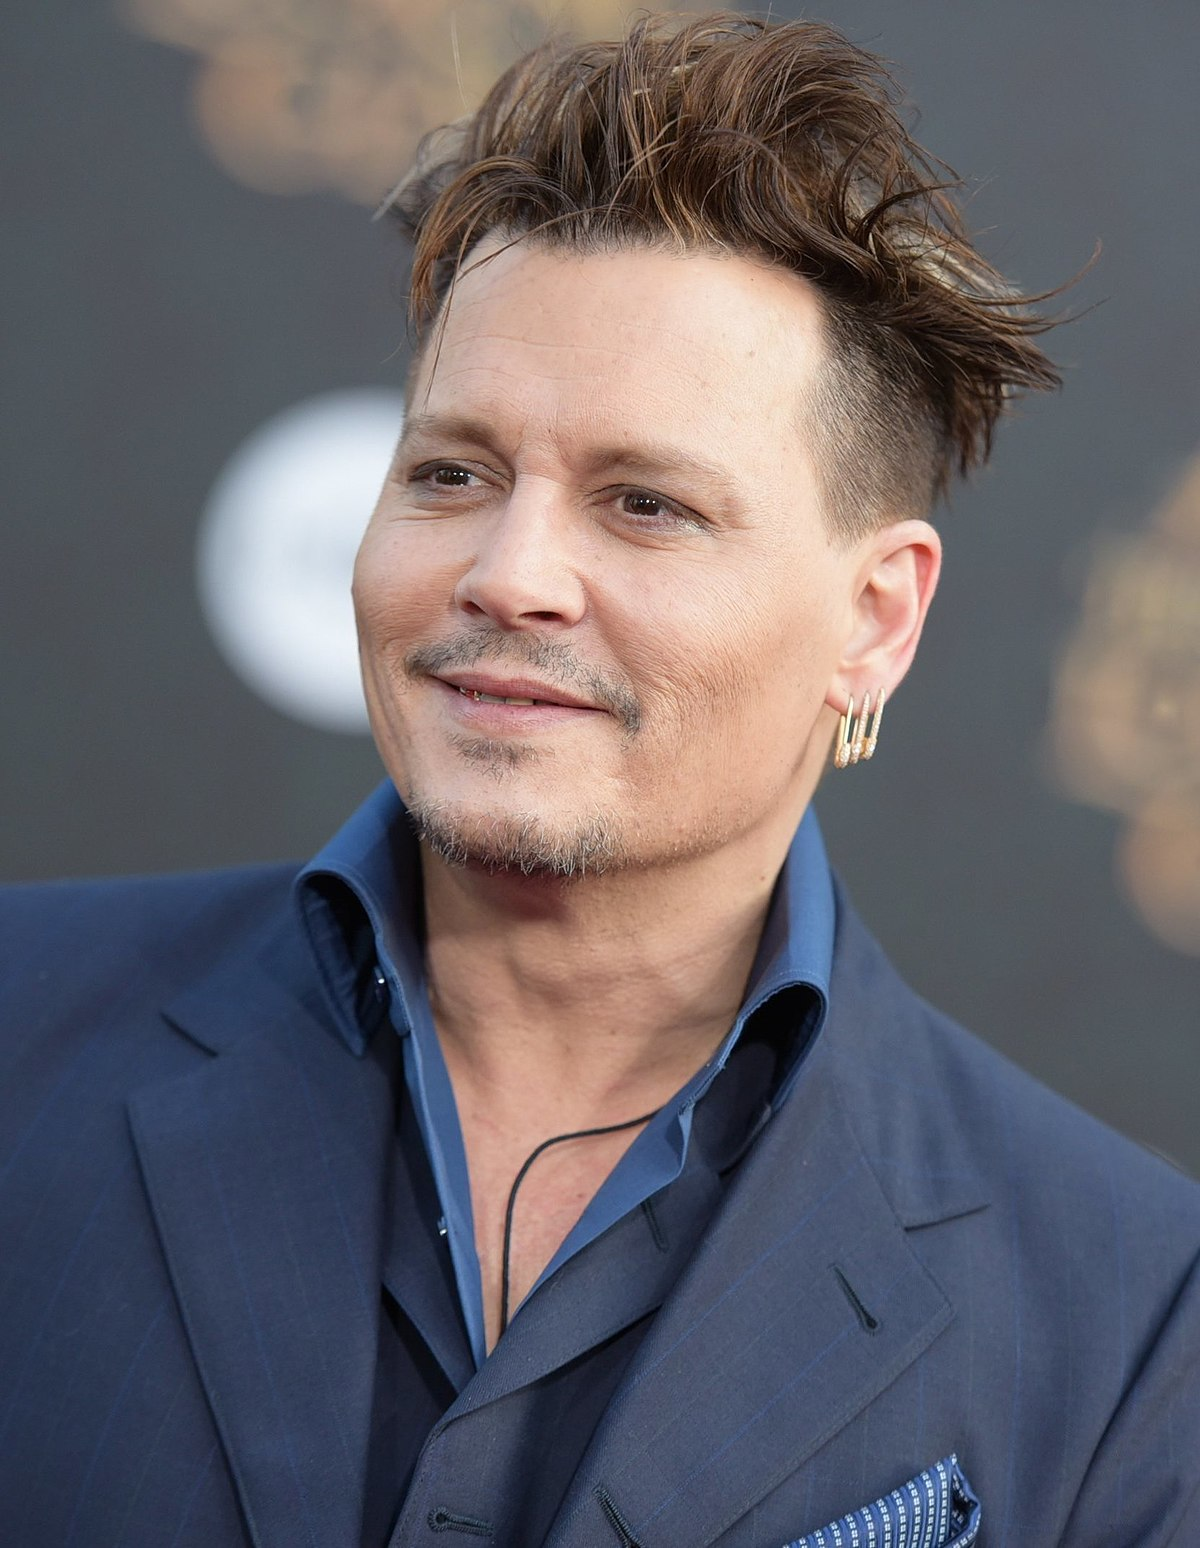 Johnny Depp - Wikipedia Johnny Depp